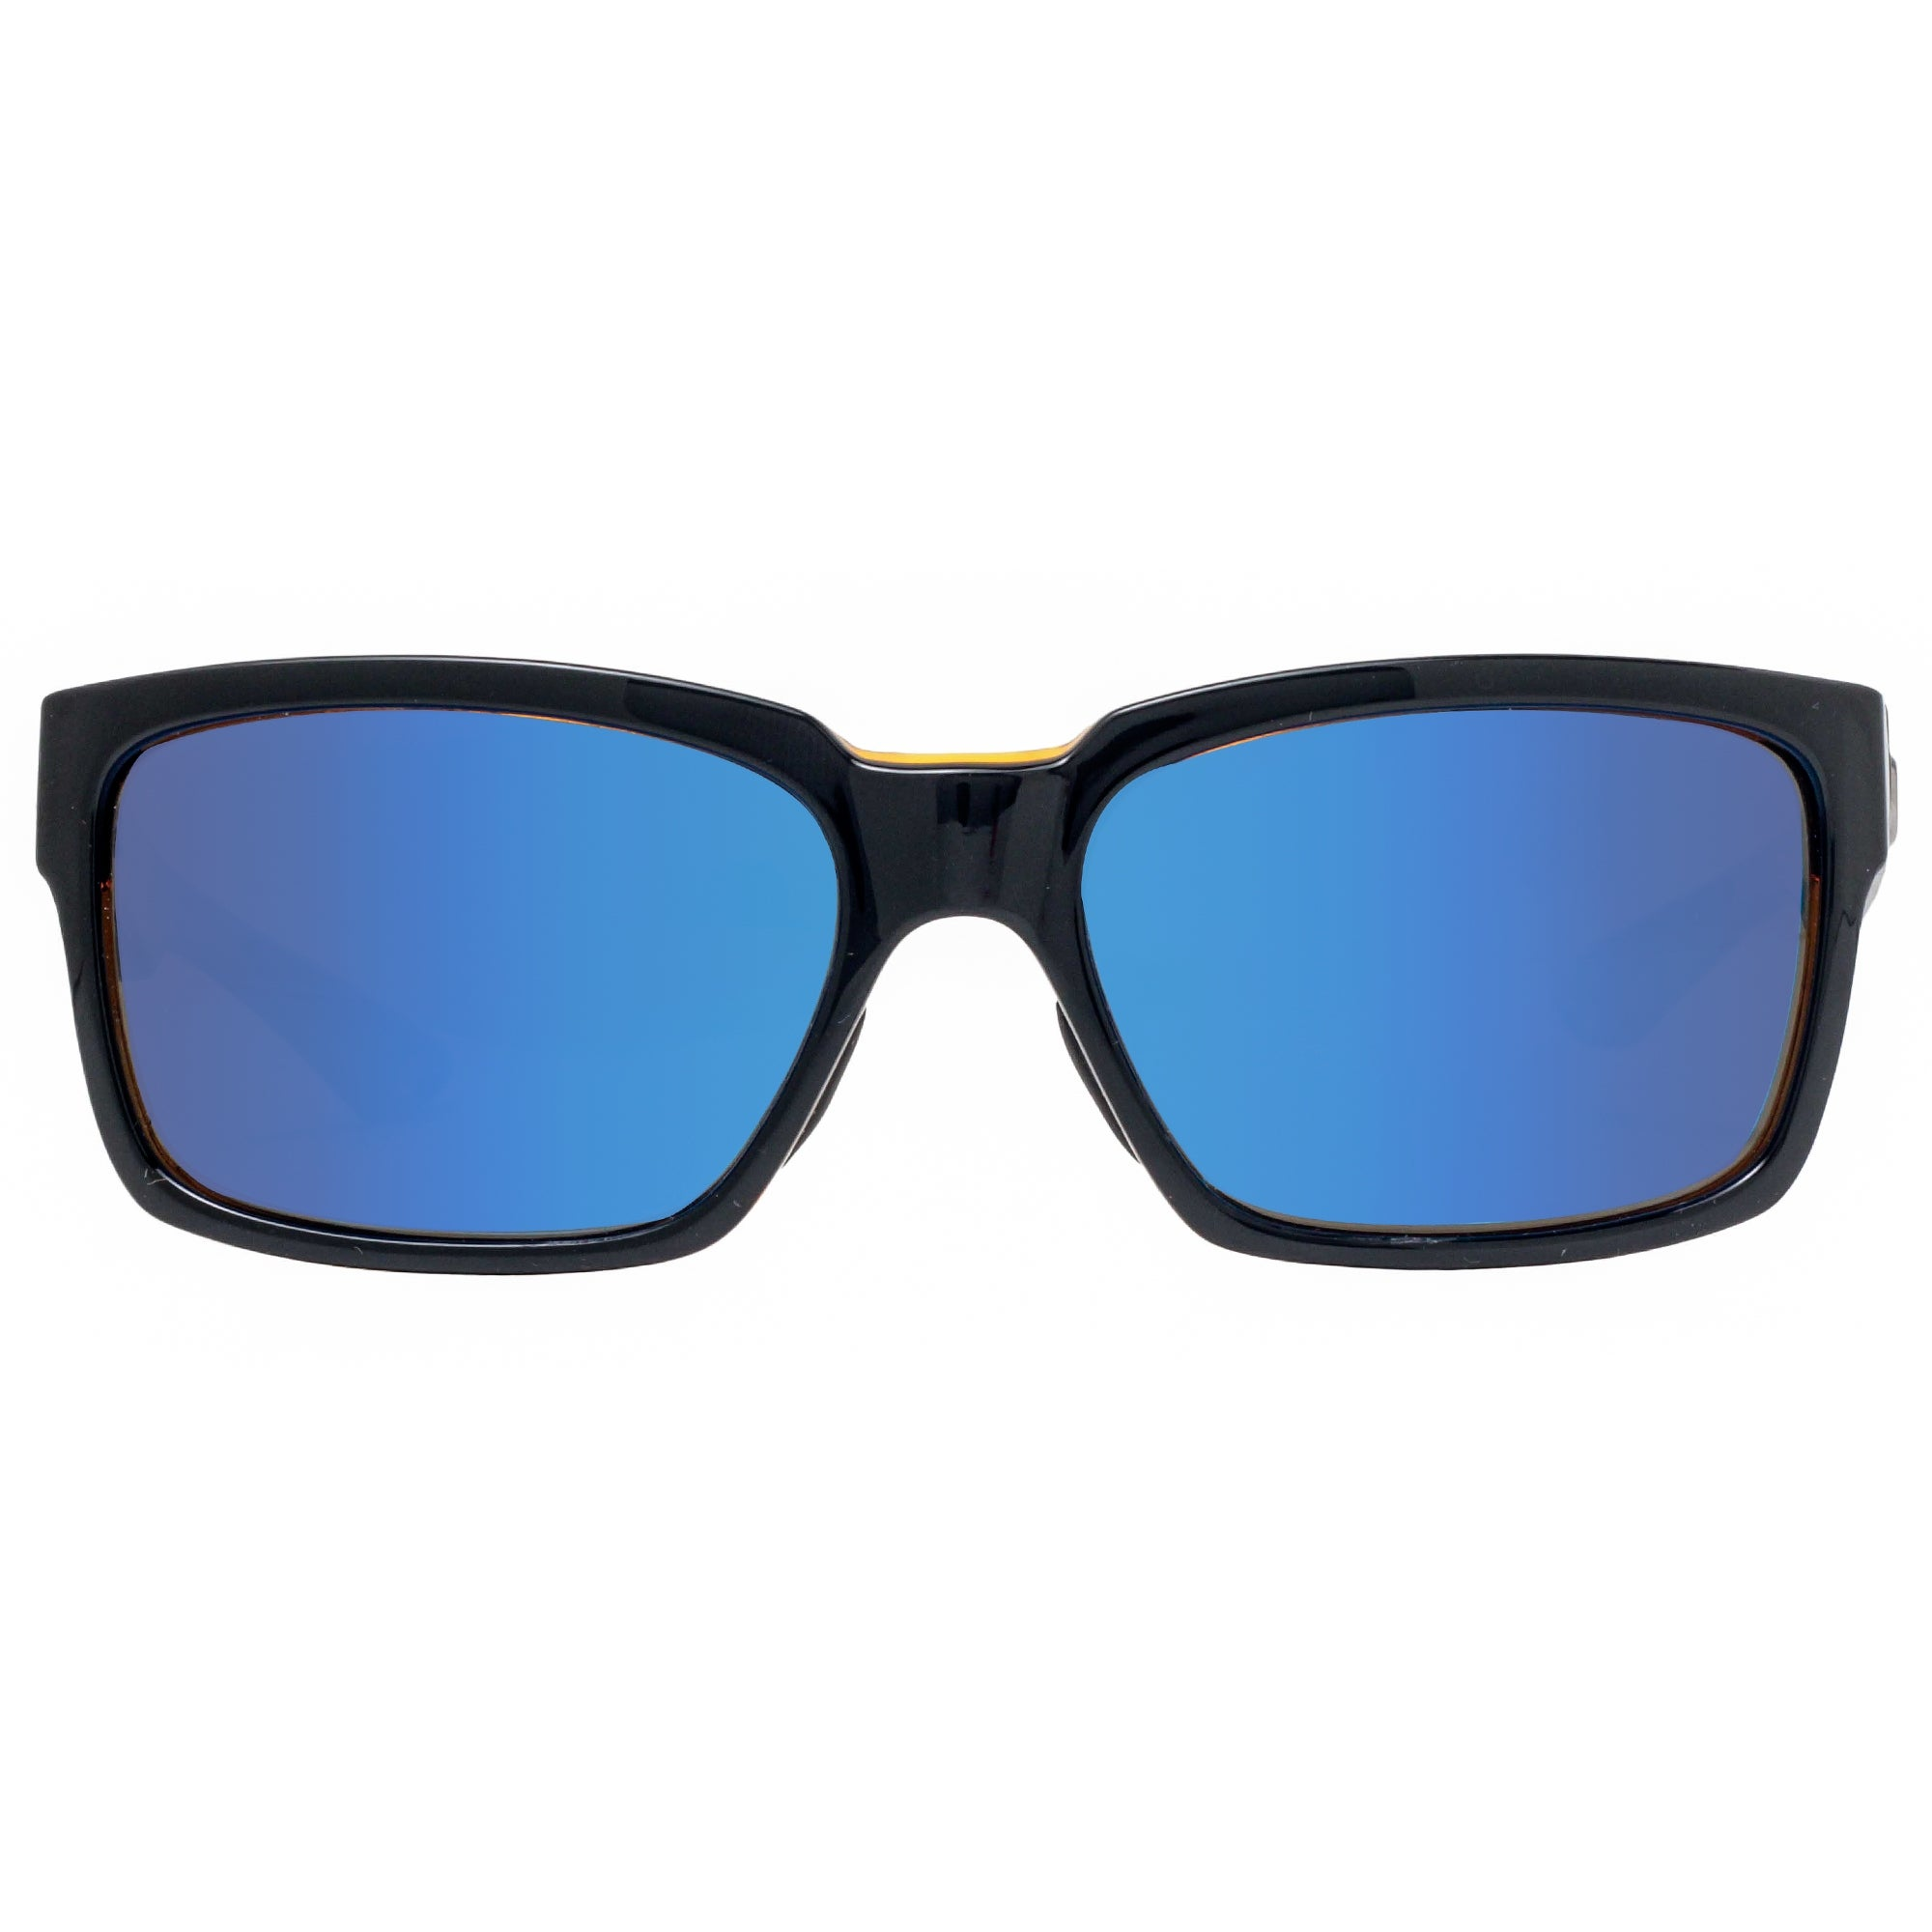 5a67ccec208e Shop Costa Del Mar Playa PY80OBMGLP Black Amber/Blue Mirror 580G Polarized  Sunglasses - black amber - 56mm-16mm-129mm - Free Shipping Today -  Overstock - ...